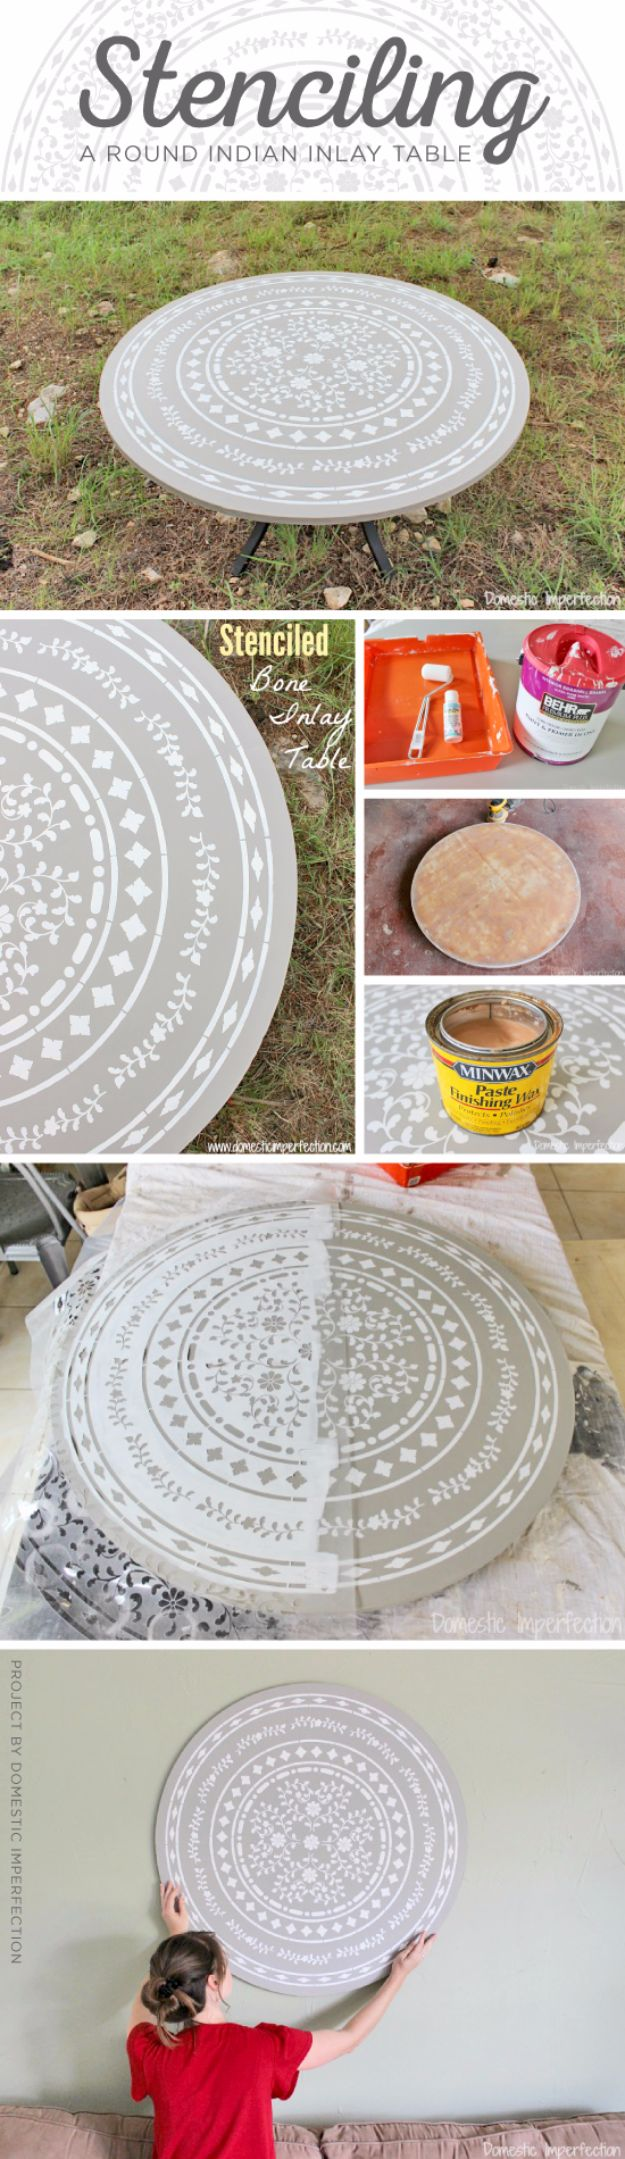 DIY Stencil Ideas - Stencil A Round Indian Inlay Table - Cool and Easy Stenciling Tutorials For Making Handmade Wallpaper and Designs, Furniture Makeover Ideas and Crafty Modern Decor With Stencils - Rustic Farmhouse Paint Techniques and Step by Step Instructions for Using Stencil Art in Your Living Room, Bedroom, Bathroom and Crafts